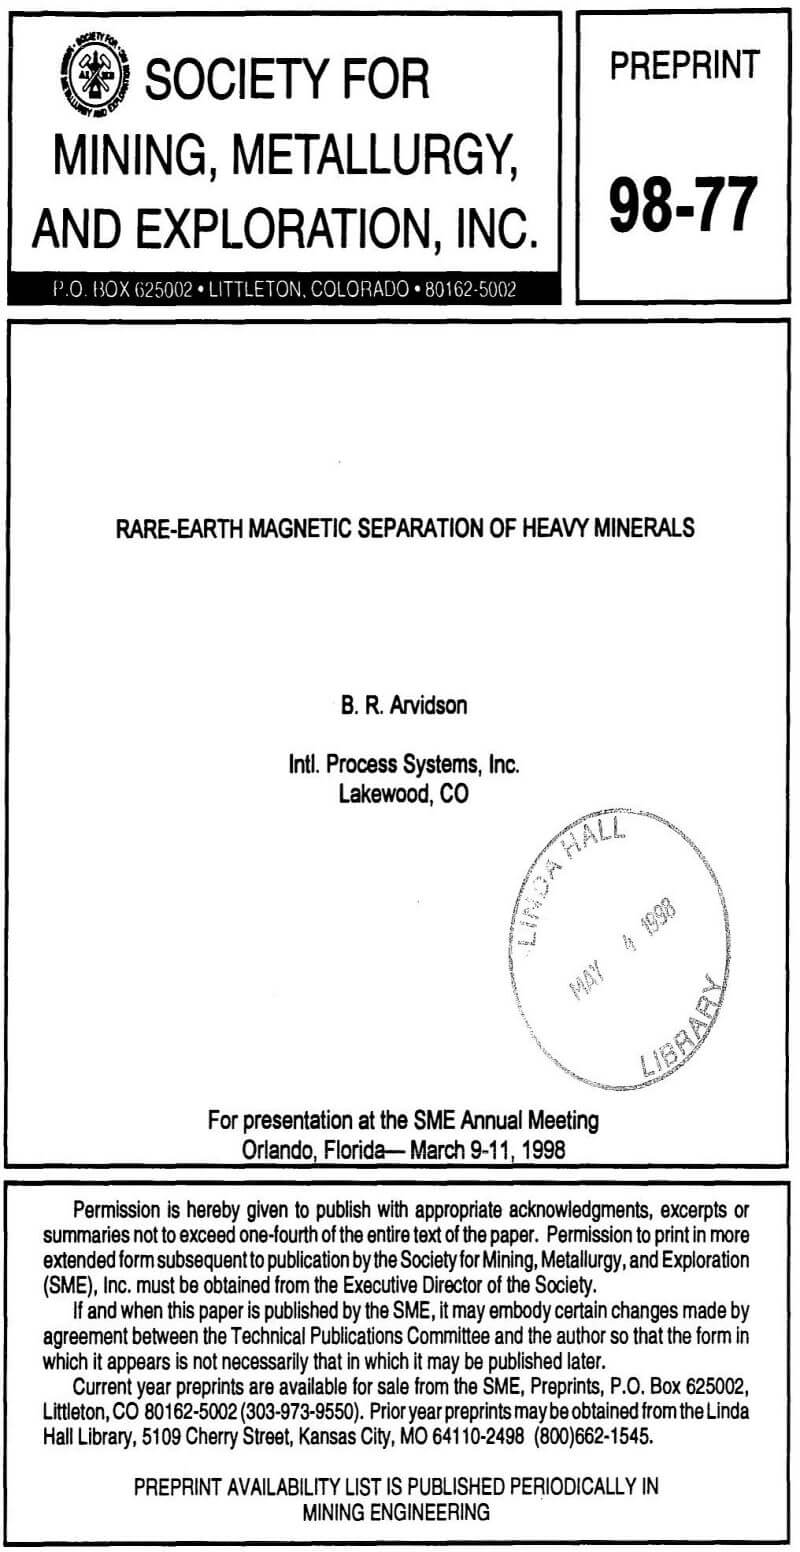 rare-earth magnetic separation of heavy minerals